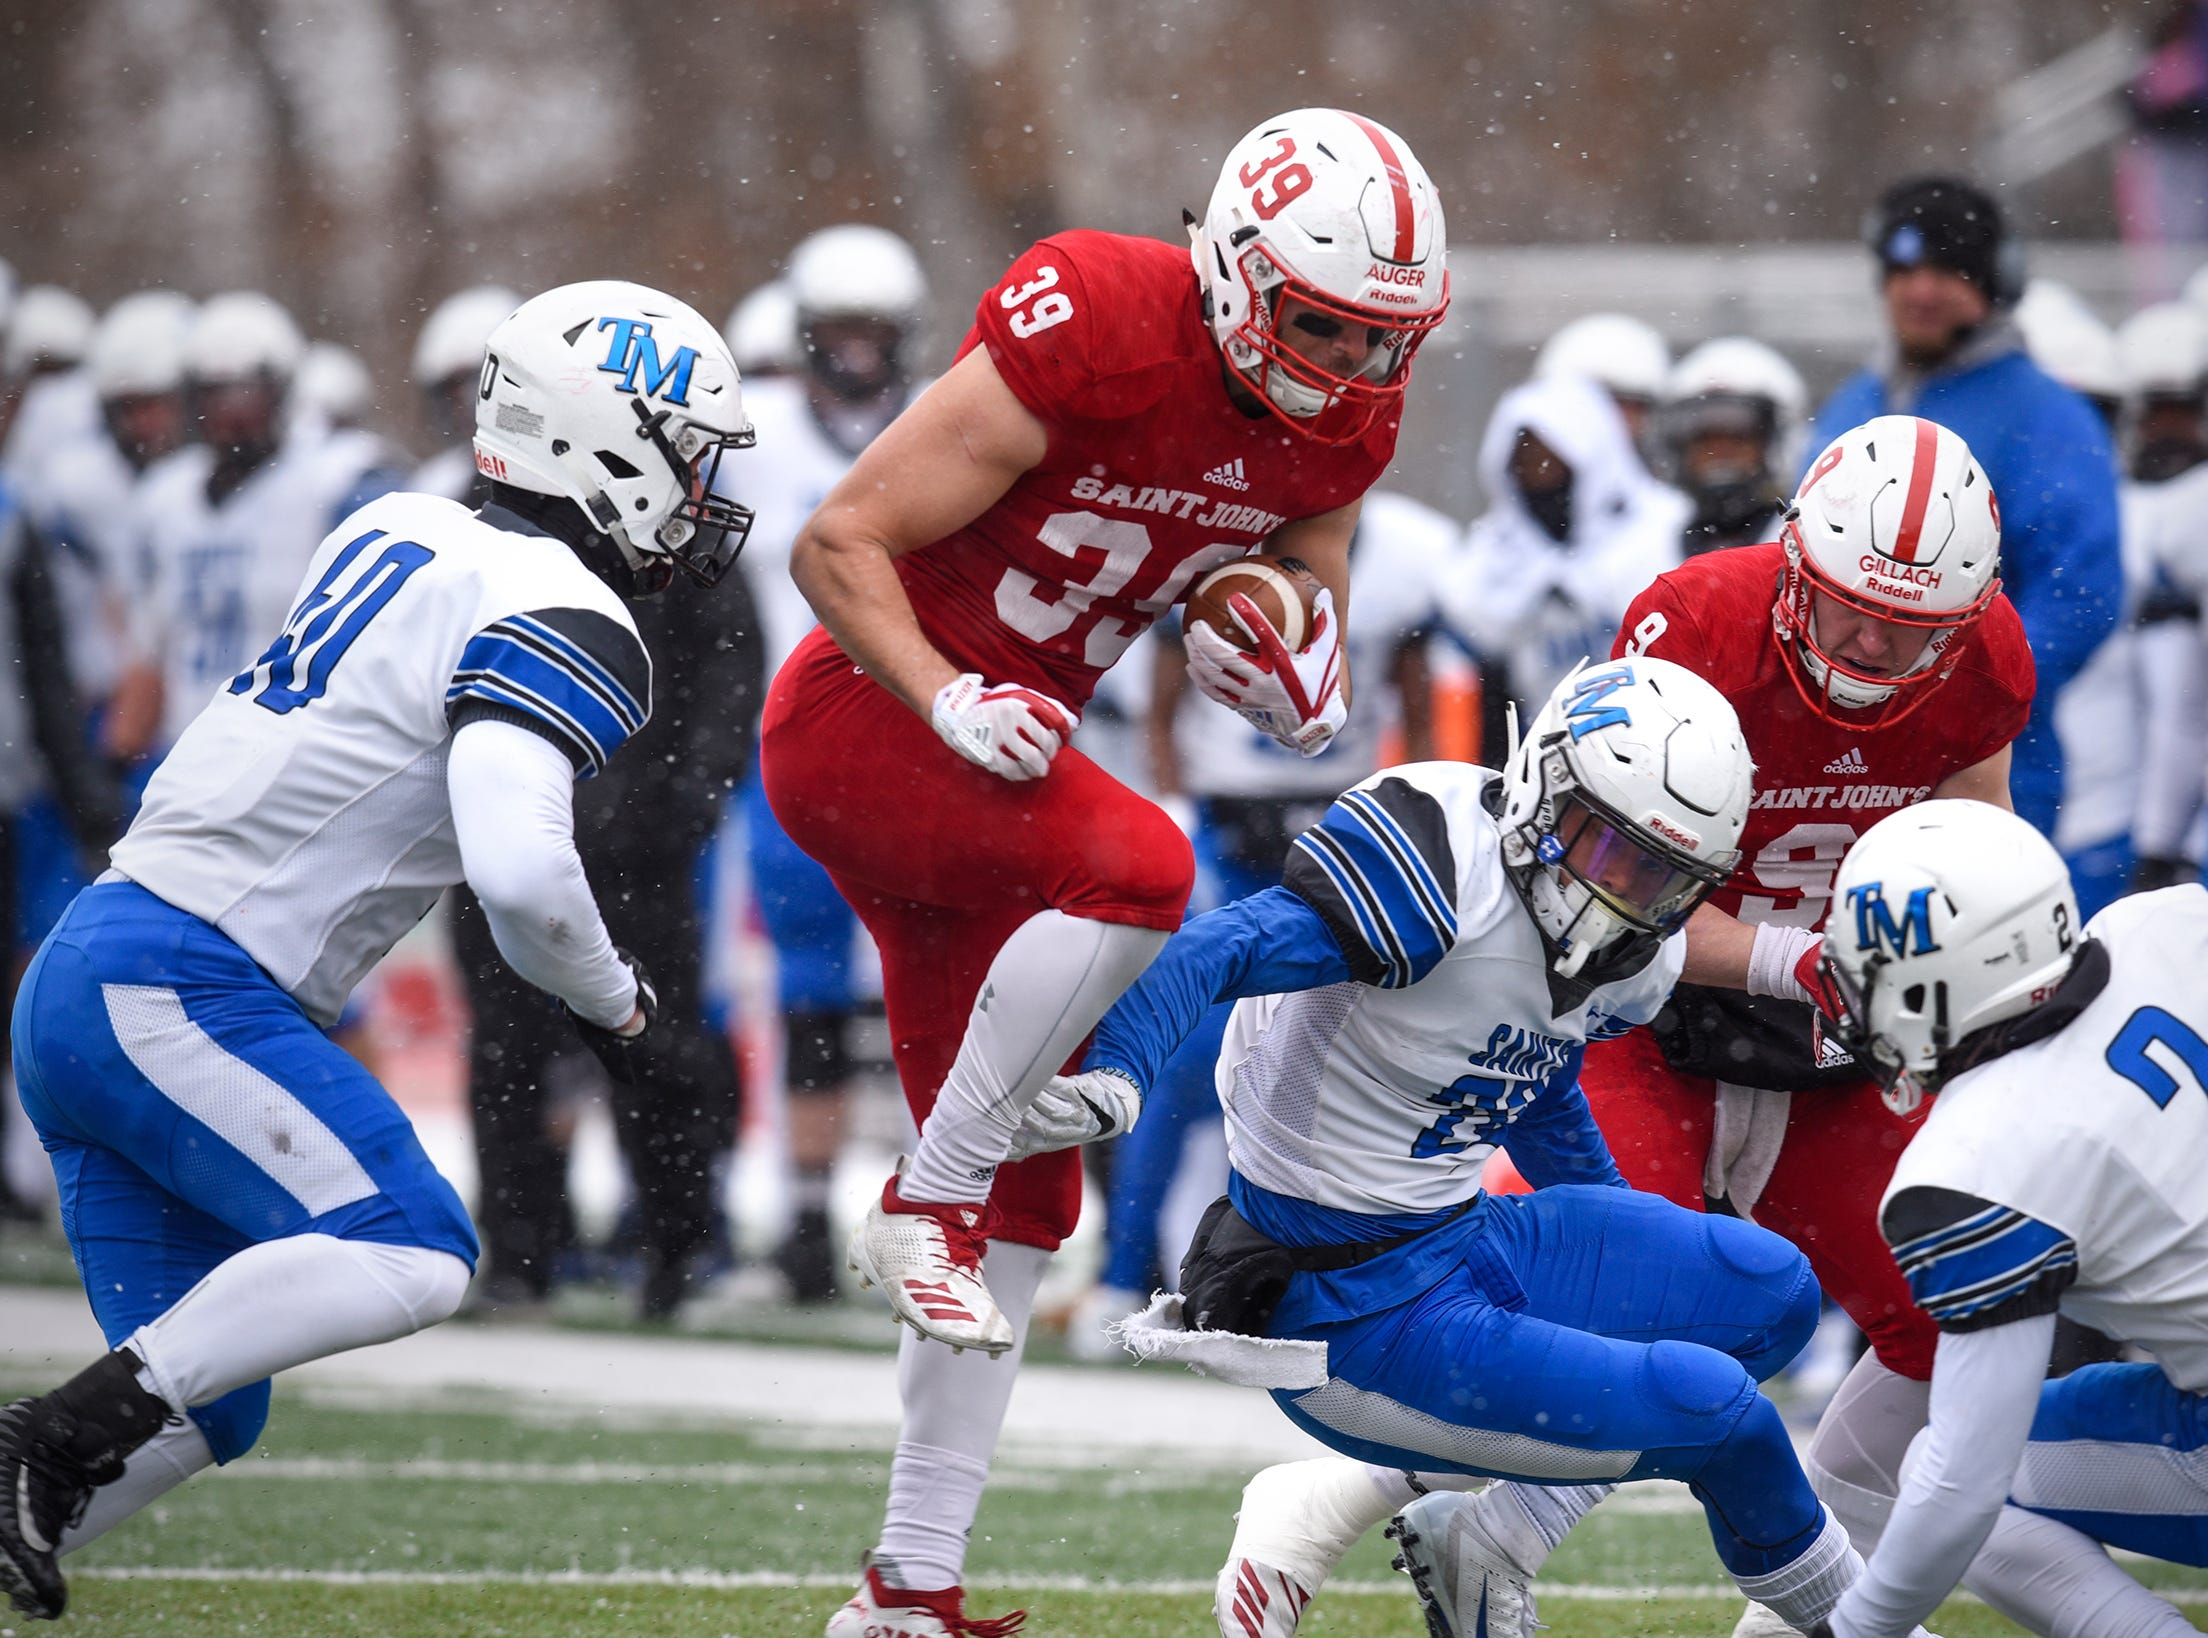 Tommy Auger carries the ball for St. John's during the first half of the Saturday, Nov. 10, game against Thomas More University at Clemens Stadium in Collegeville.